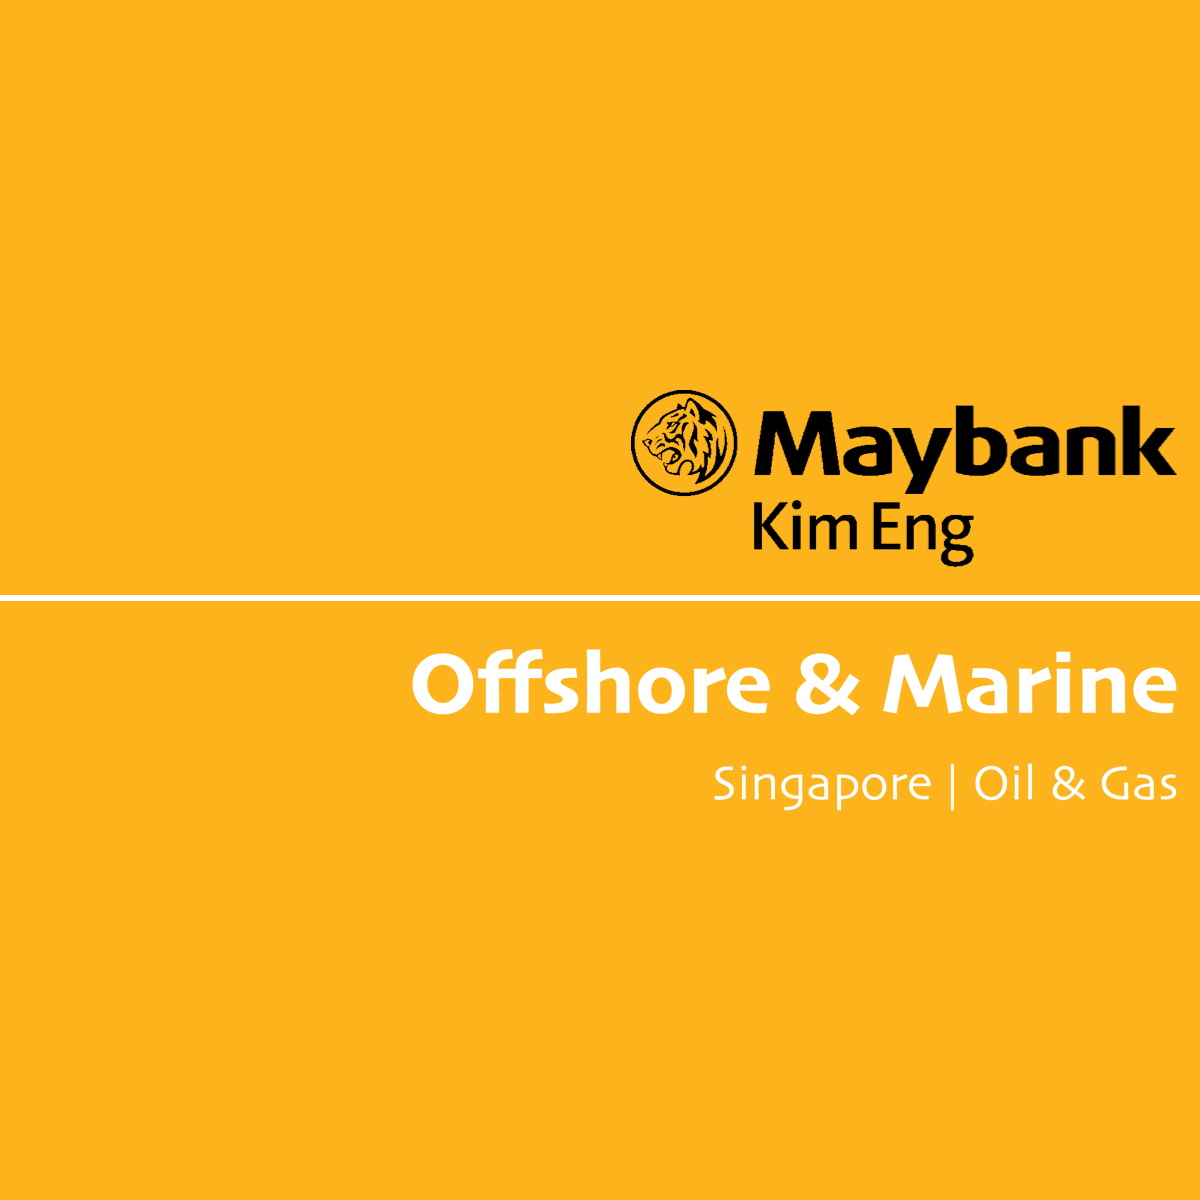 Offshore & Marine - Maybank Kim Eng 2016-12-21: 2017 Still Not Easy